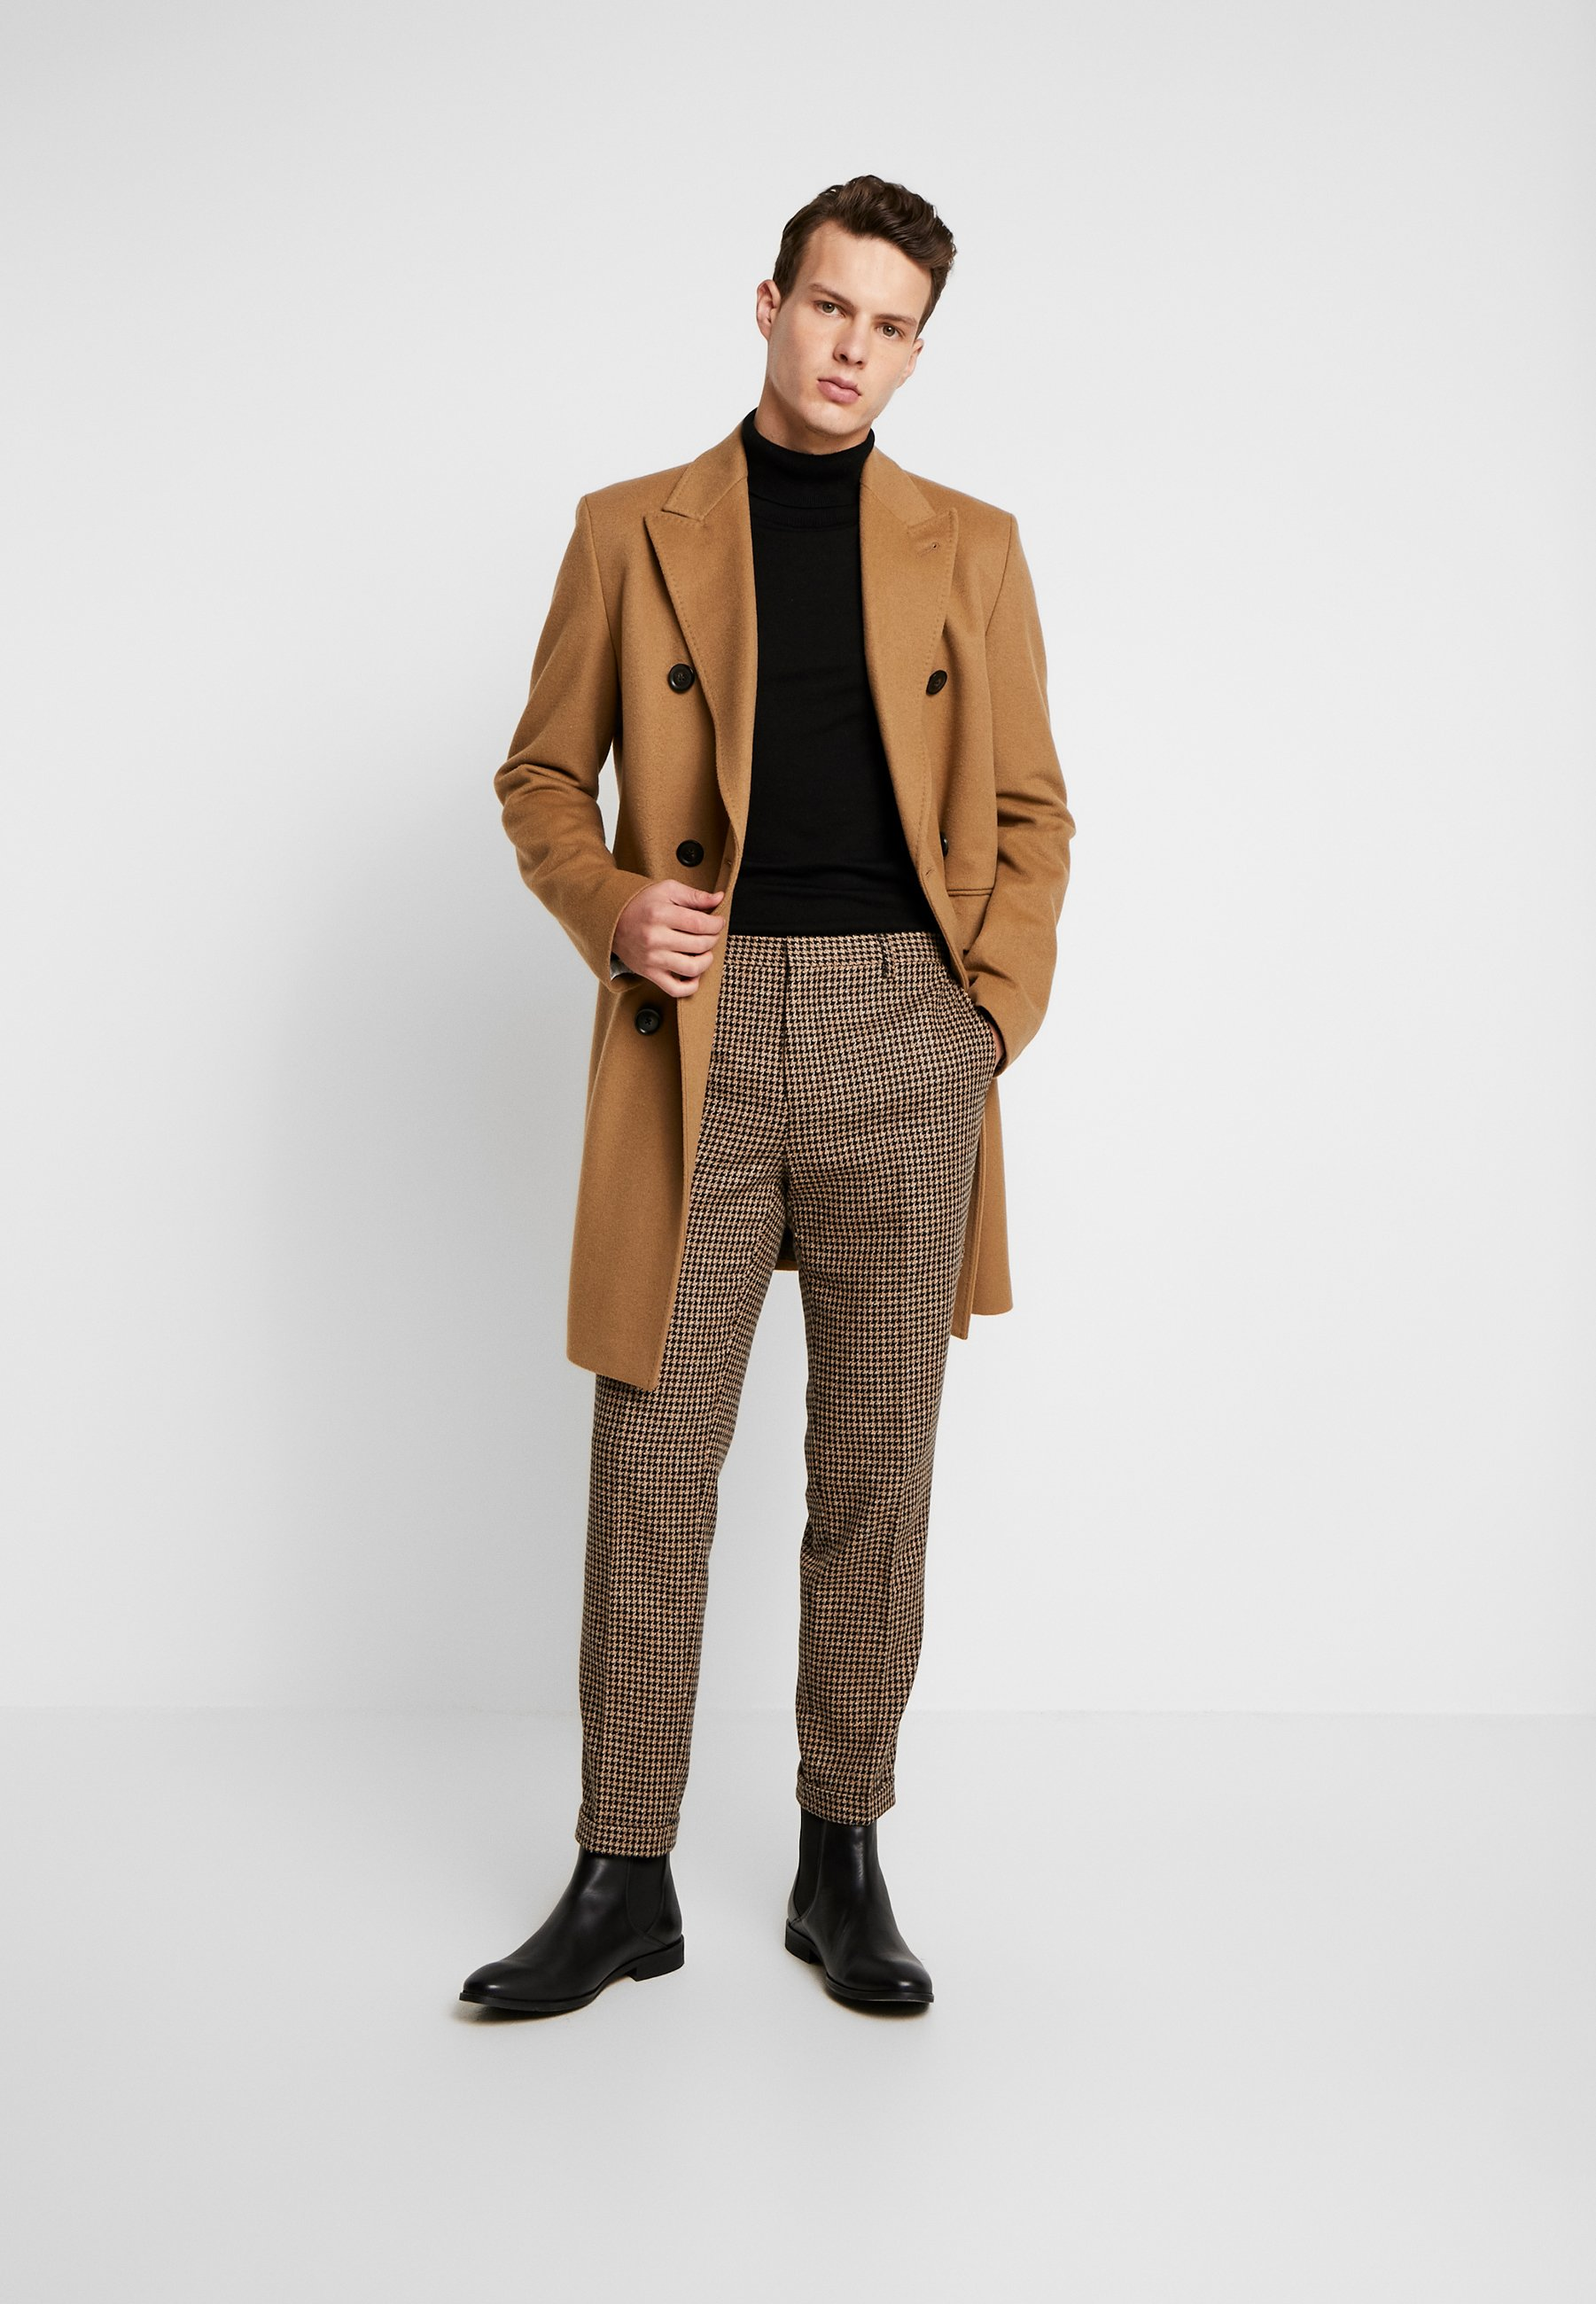 Shelby & Sons Knighton Trouser - Trousers Brown UK